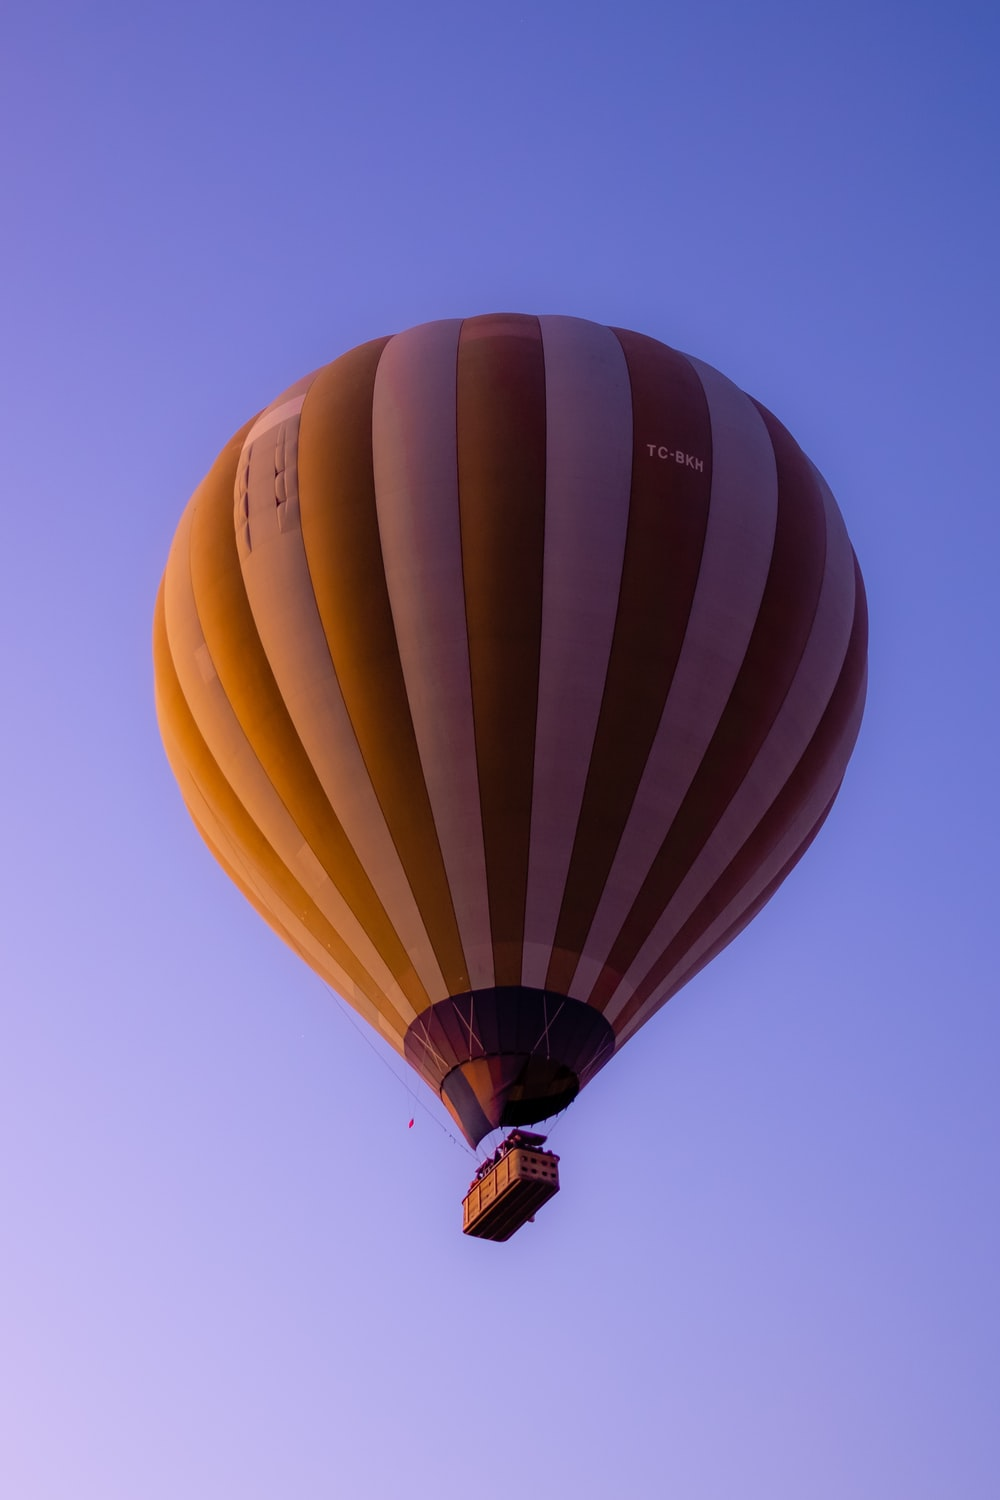 yellow and white hot air balloon in the sly during daytime